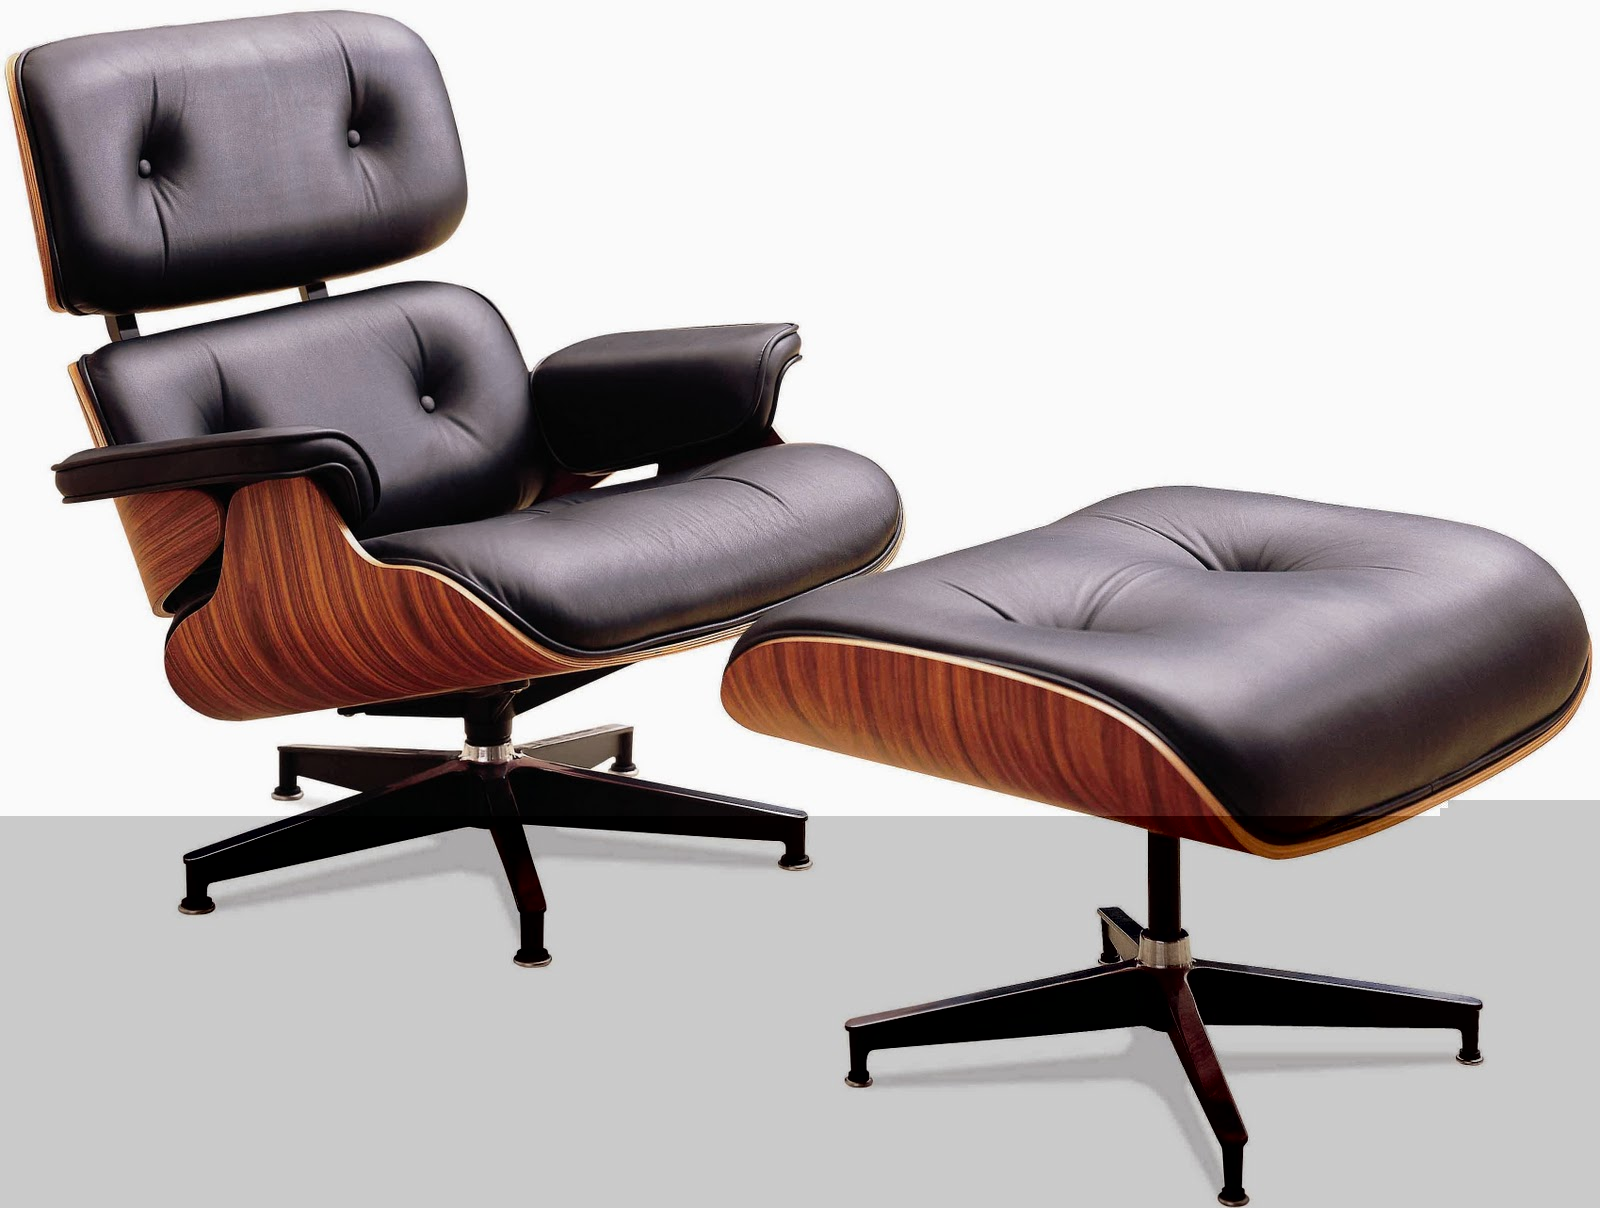 El sillon lounge chair de eames un cl sico muy actual el for Sillas y sillones de diseno